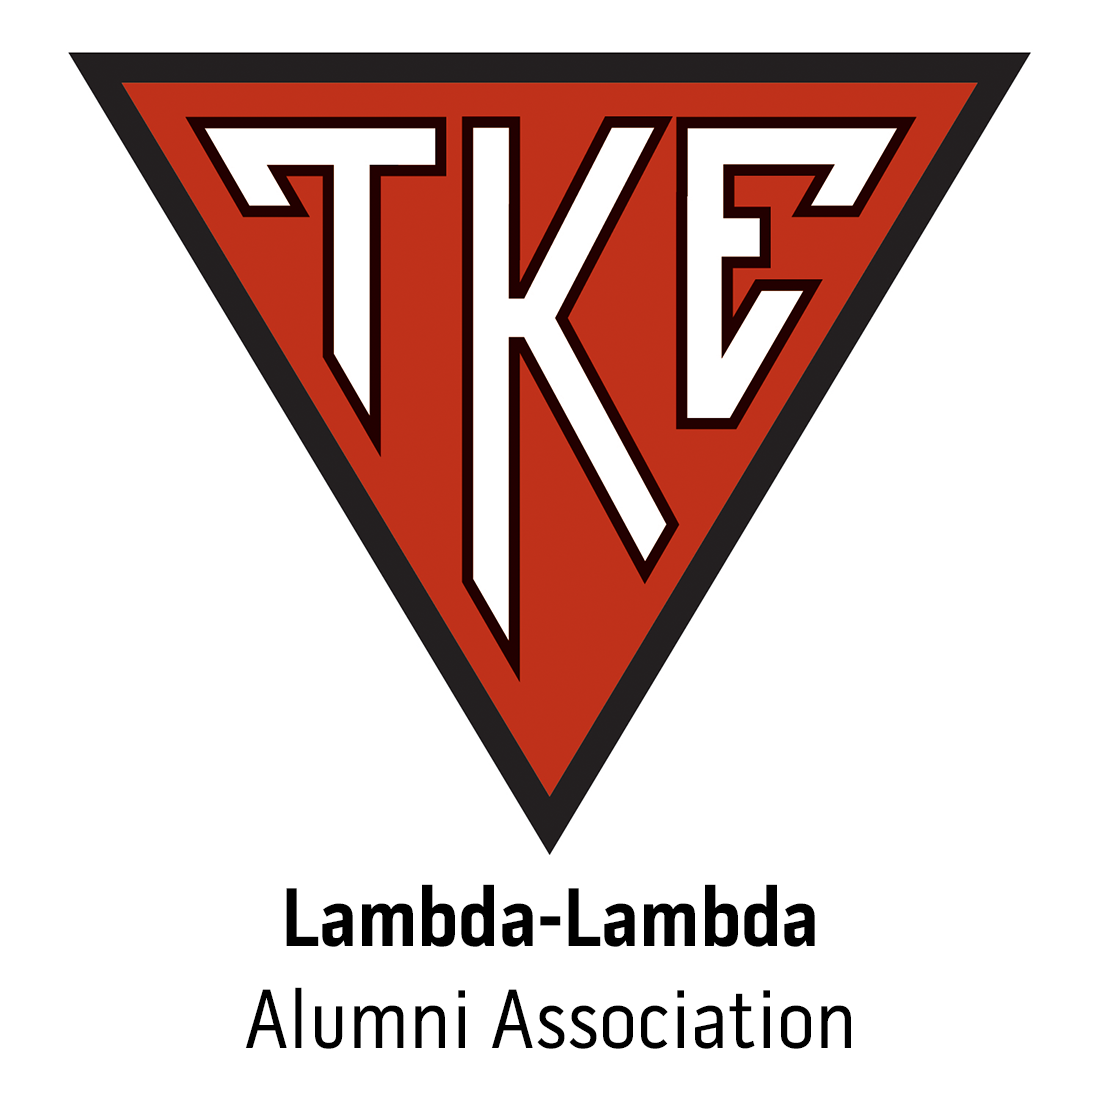 Lambda-Lambda Alumni Association for Utica College